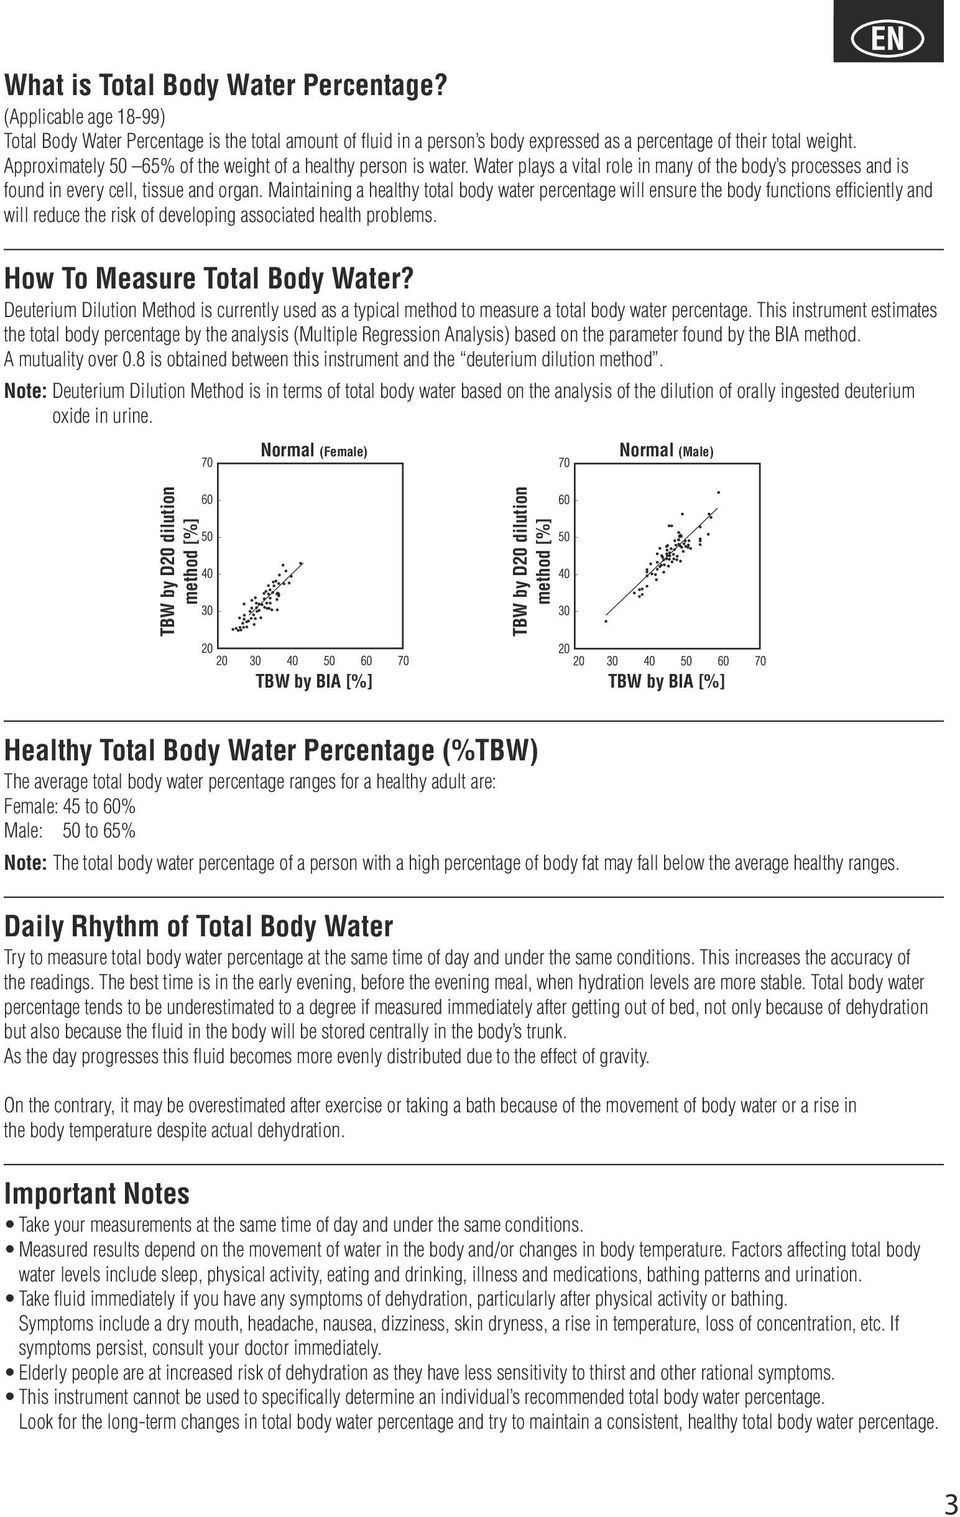 Maintaining a healthy total body water percentage will ensure the body functions efficiently and will reduce the risk of developing associated health problems. How To Measure Total Body Water?